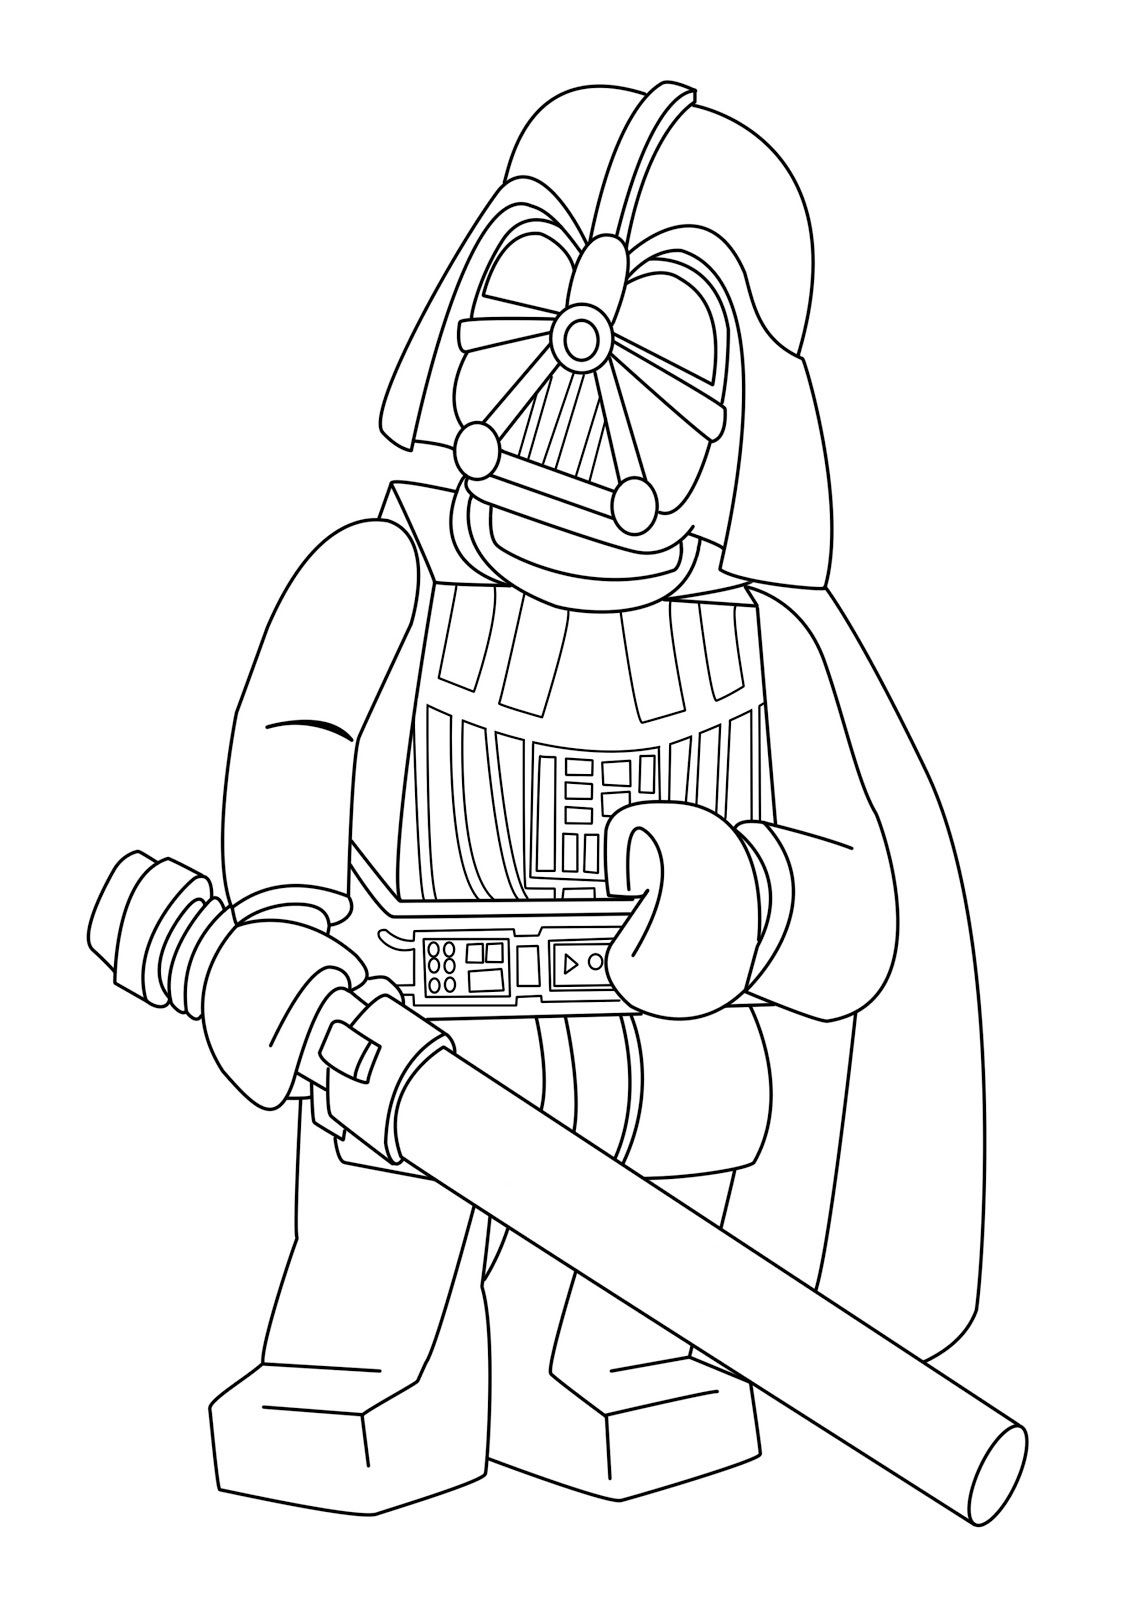 Lego Star Wars Coloring Pages Make Some That Is Darth Vader In Construction Clothes